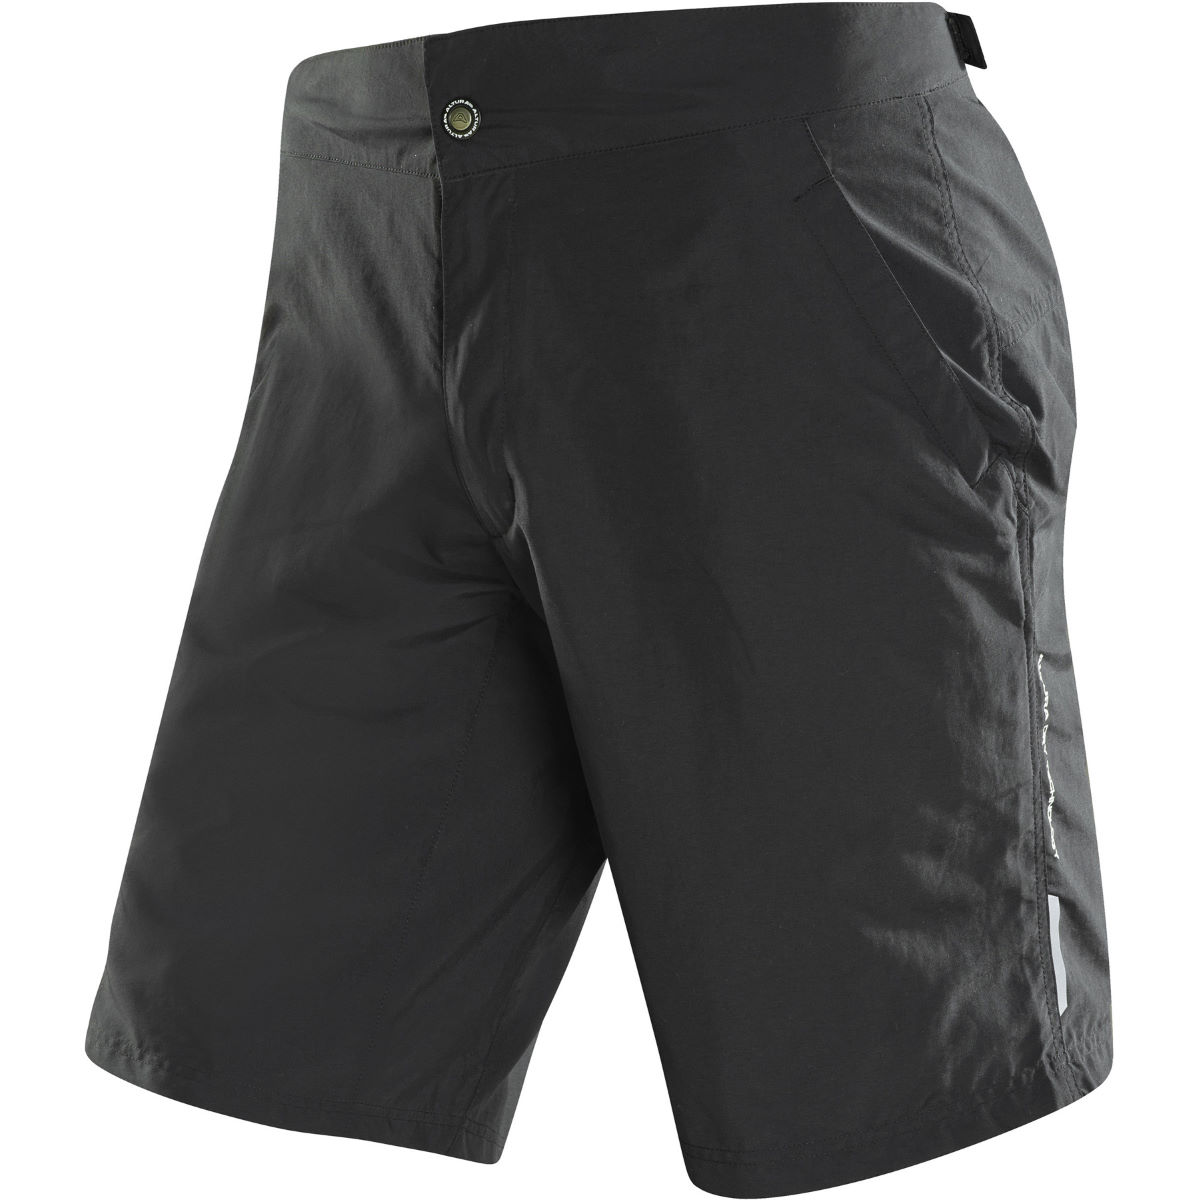 Short ample Femme Altura Cadence - 14 UK Noir  Shorts VTT